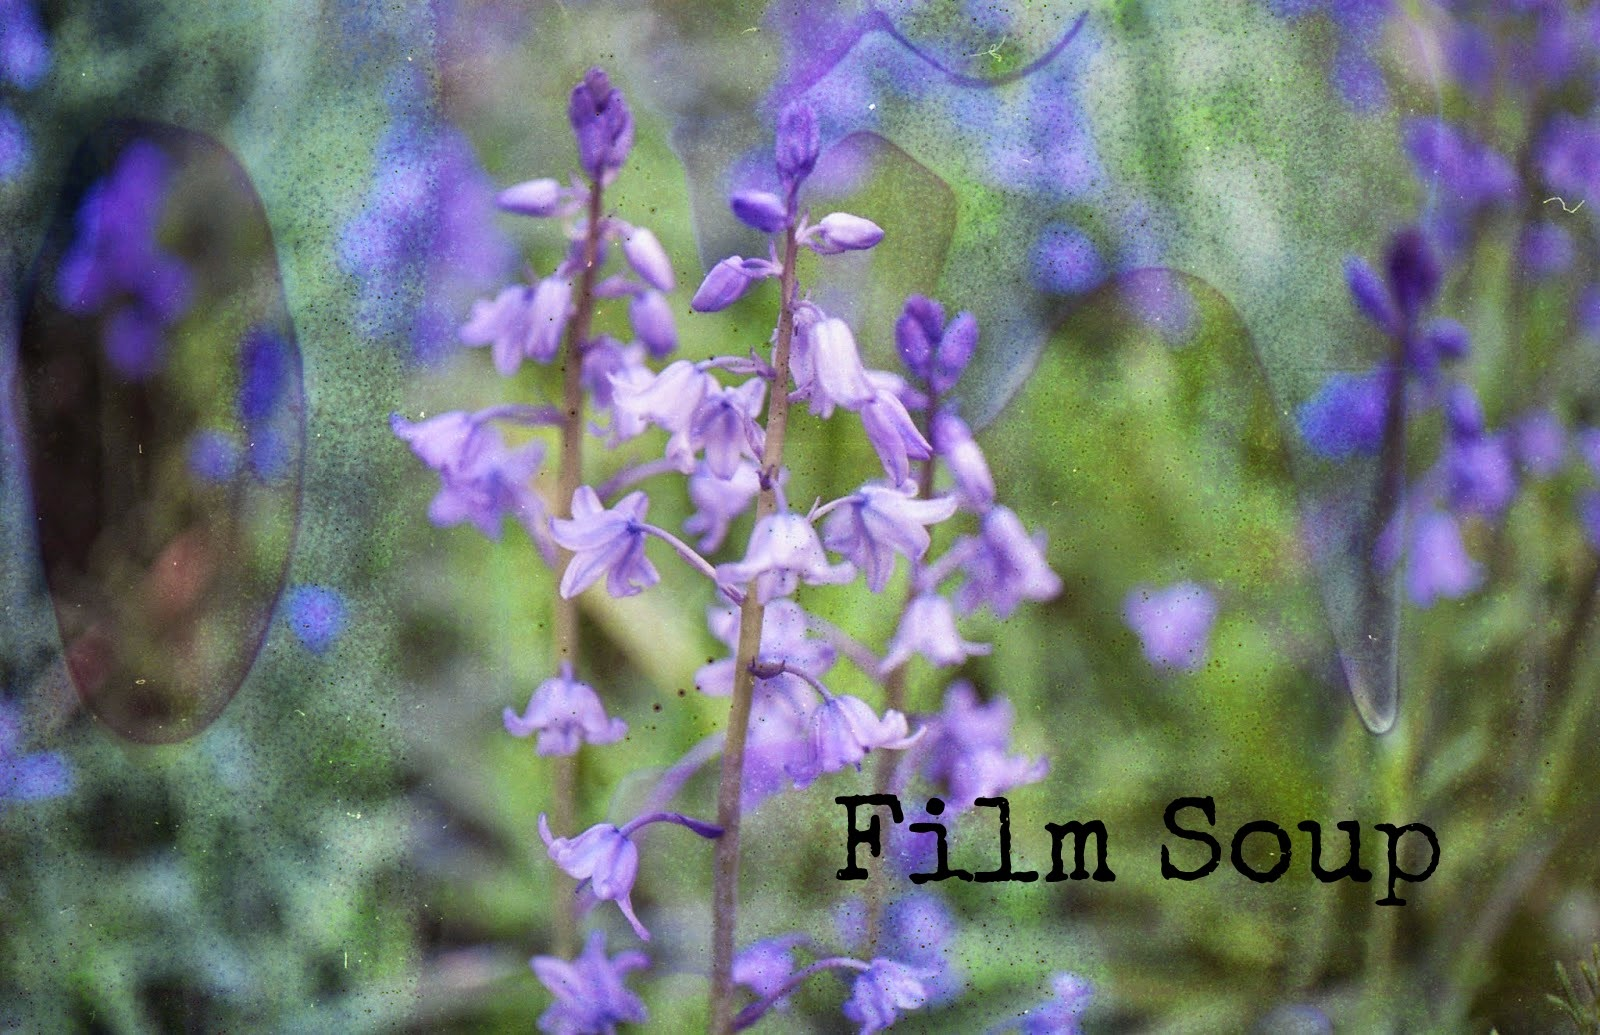 http://talesonfilm.blogspot.co.uk/2014/07/film-soup.html